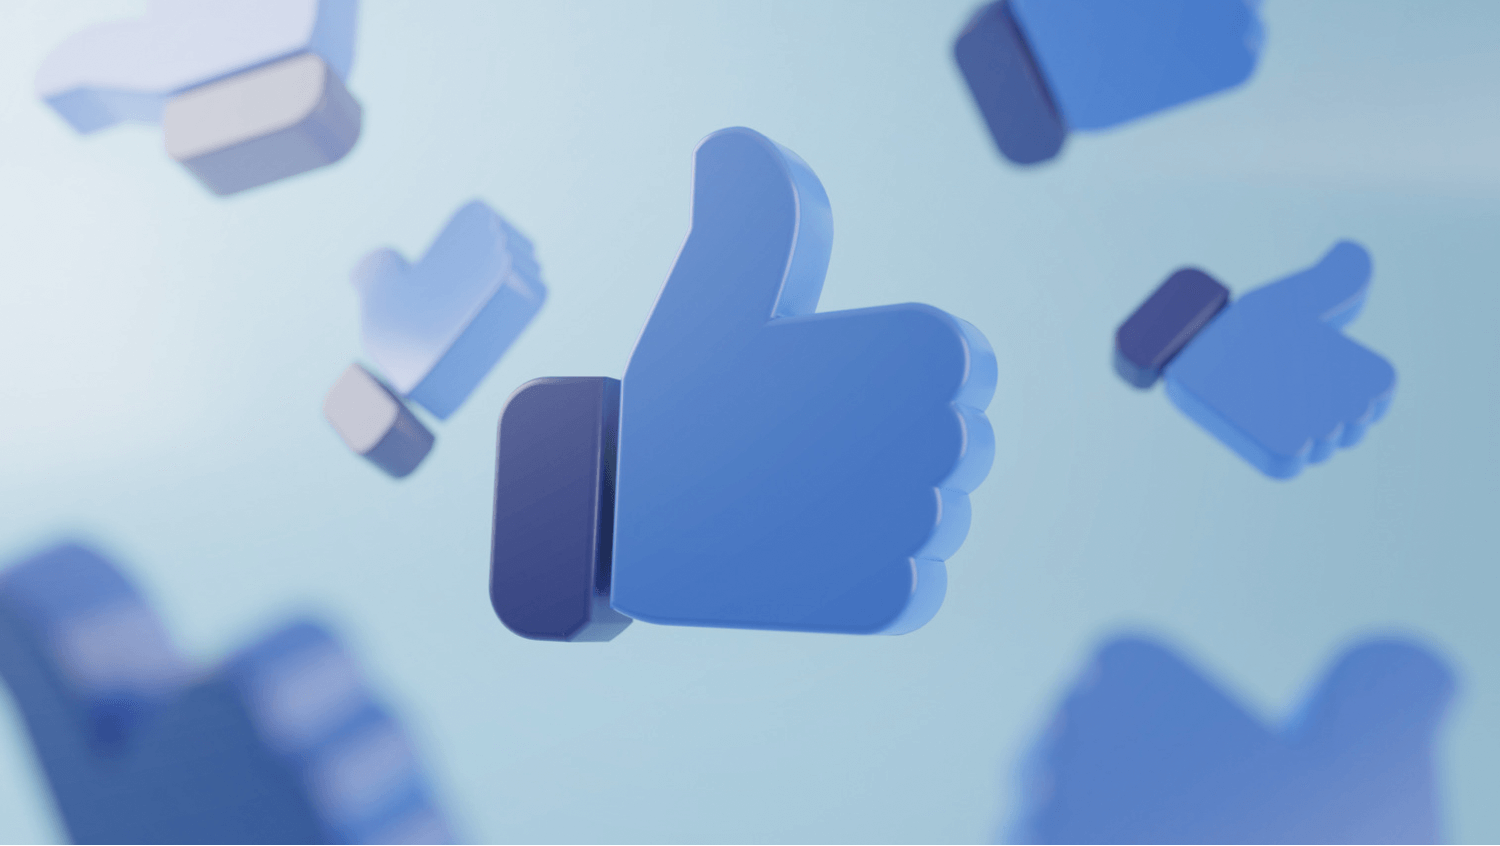 Social media as a business opportunity